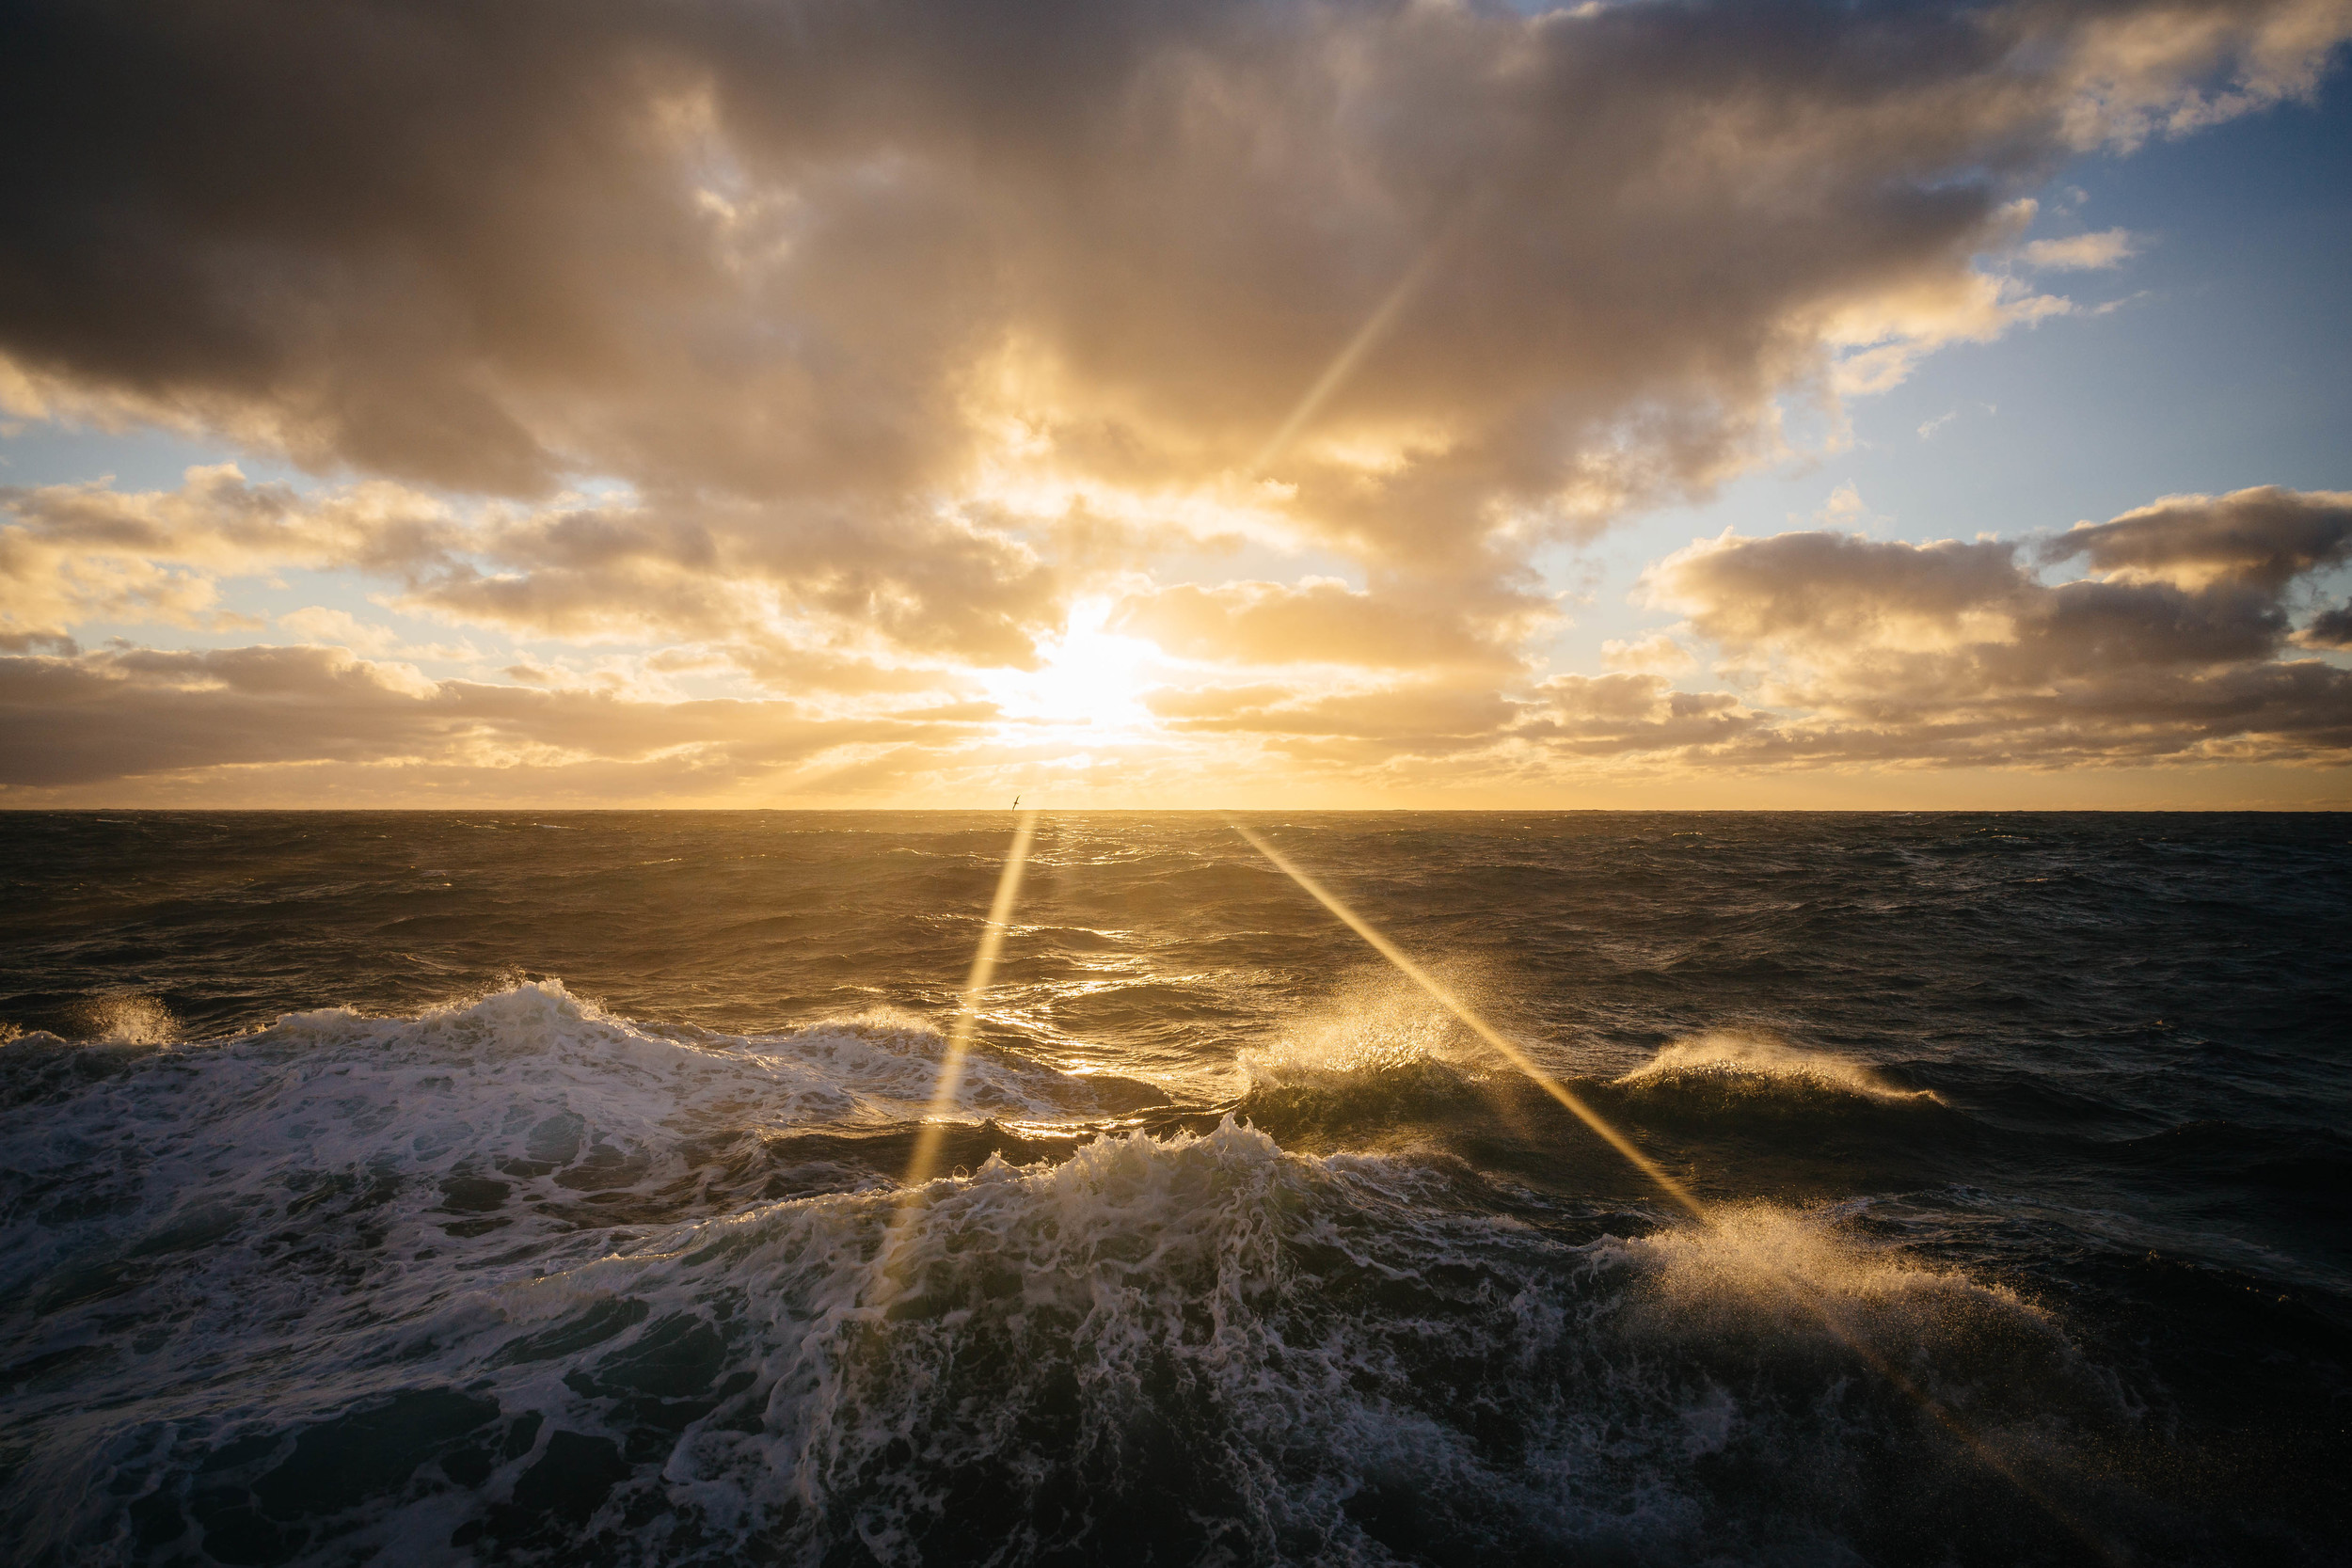 A golden sun sets and waves roll by as we sail south through the Drake Passage.